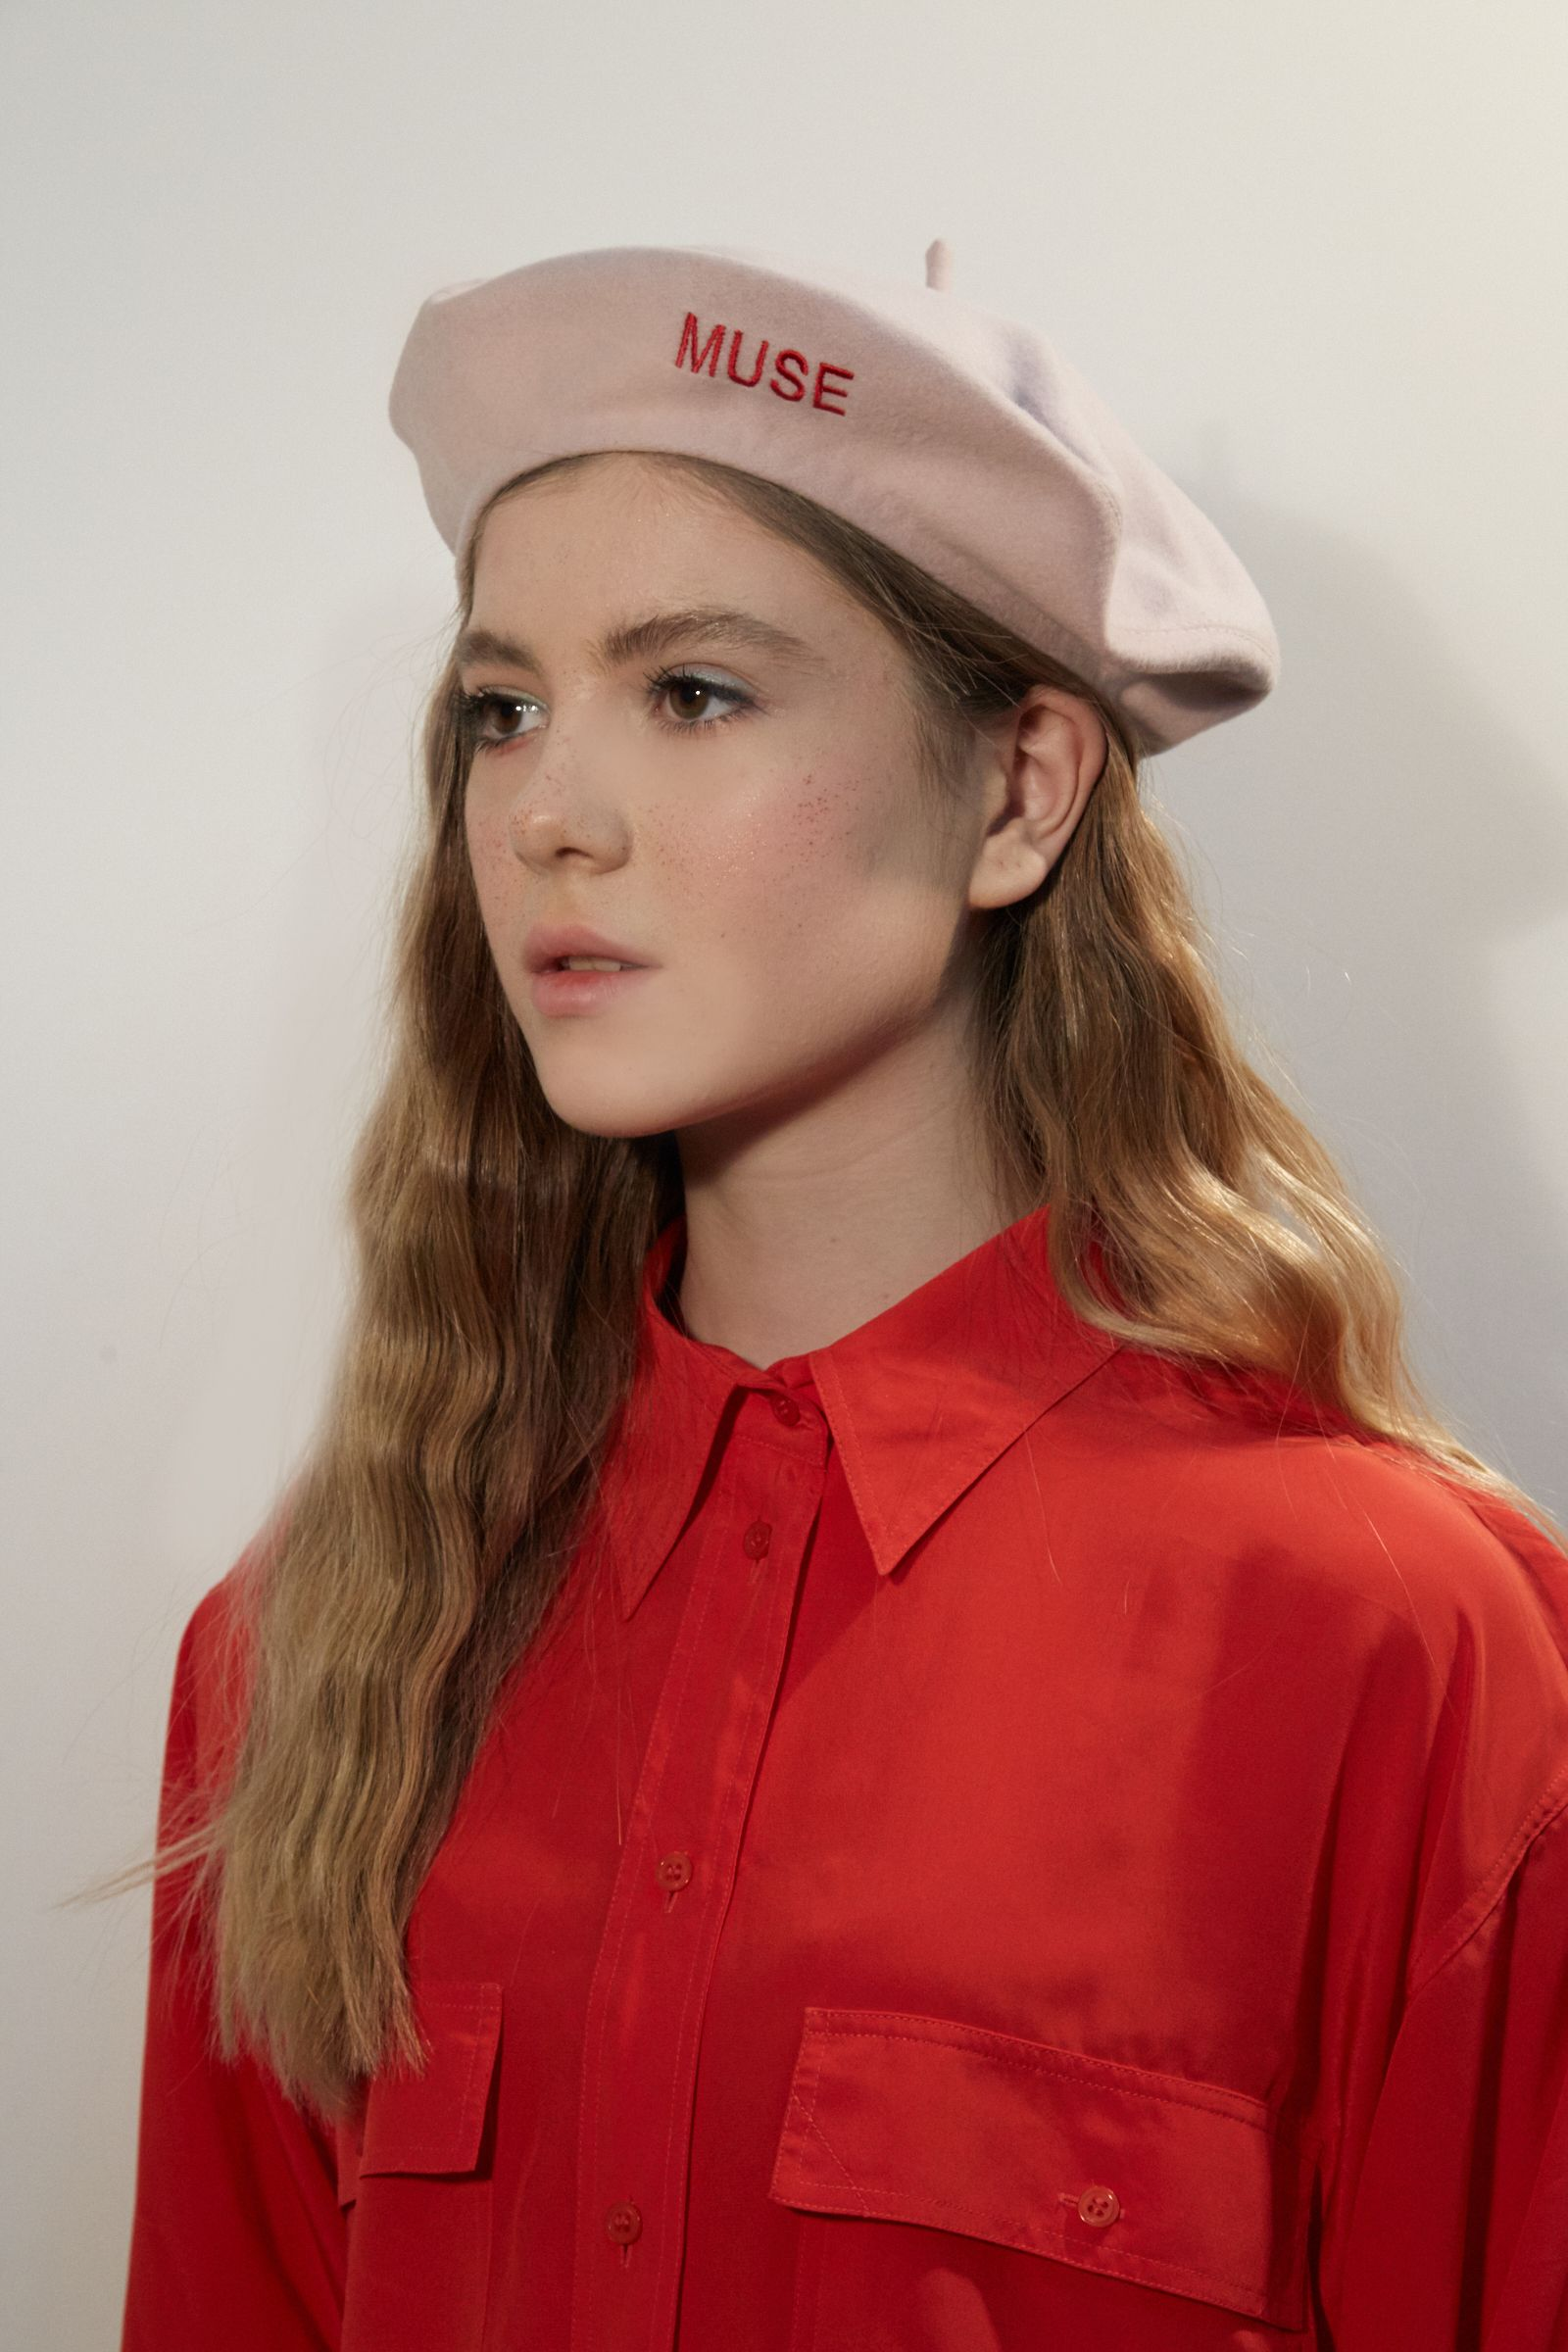 676ca9d5 Pink cashmere beret with red MUSE embroidery, pastel pink beret,  embroidered beret, embroidery beret, pink wool beret, girly beret,berets  for women, ...